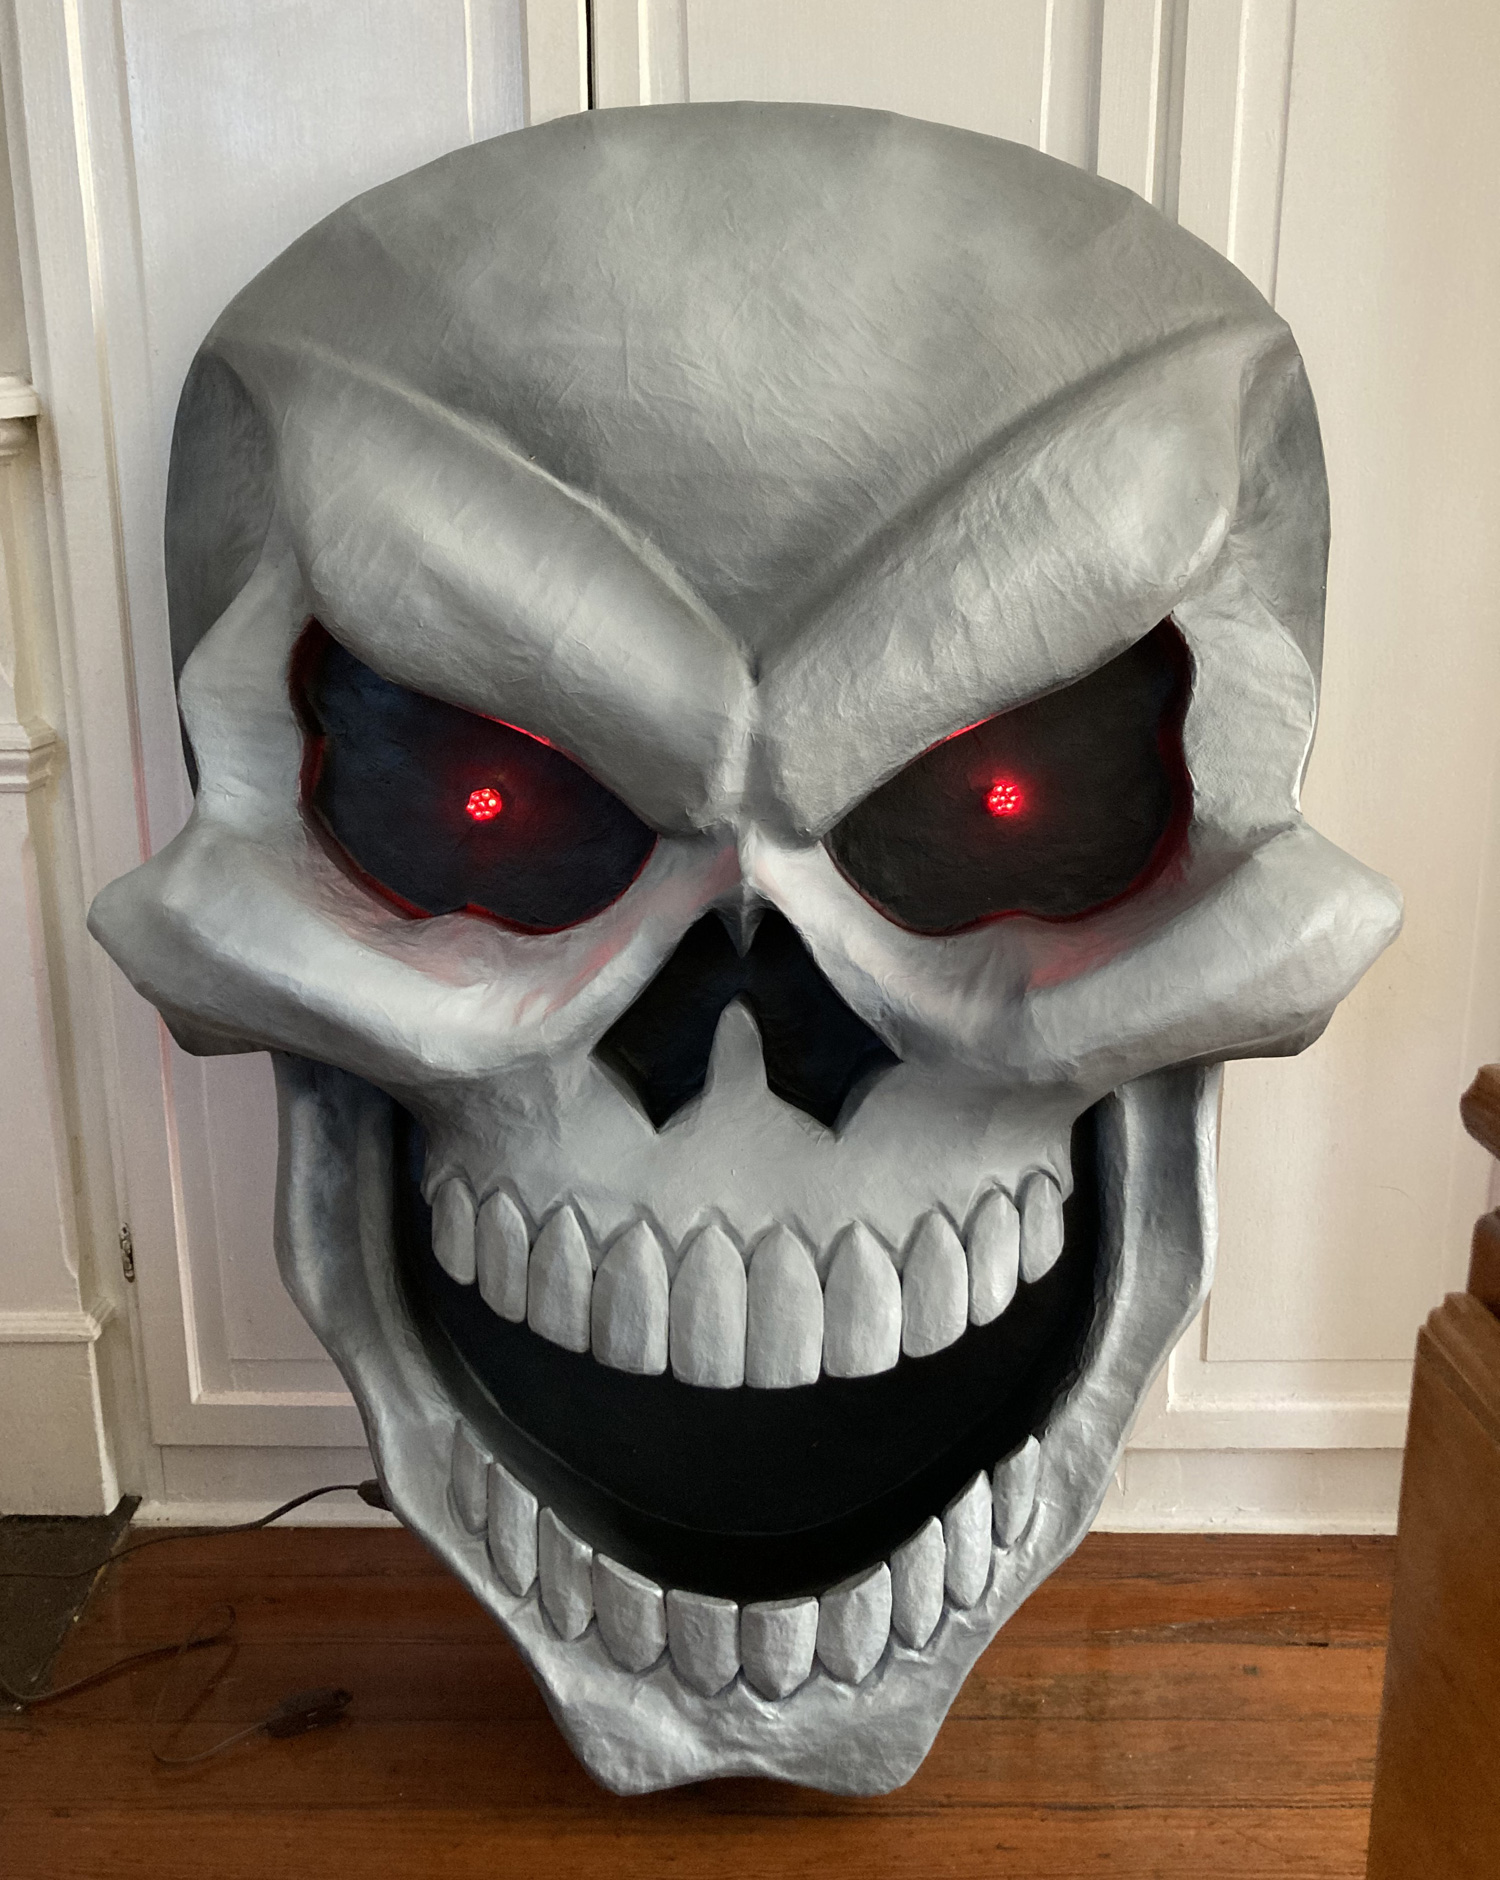 Giant paper maché skull Halloween decoration - finished!